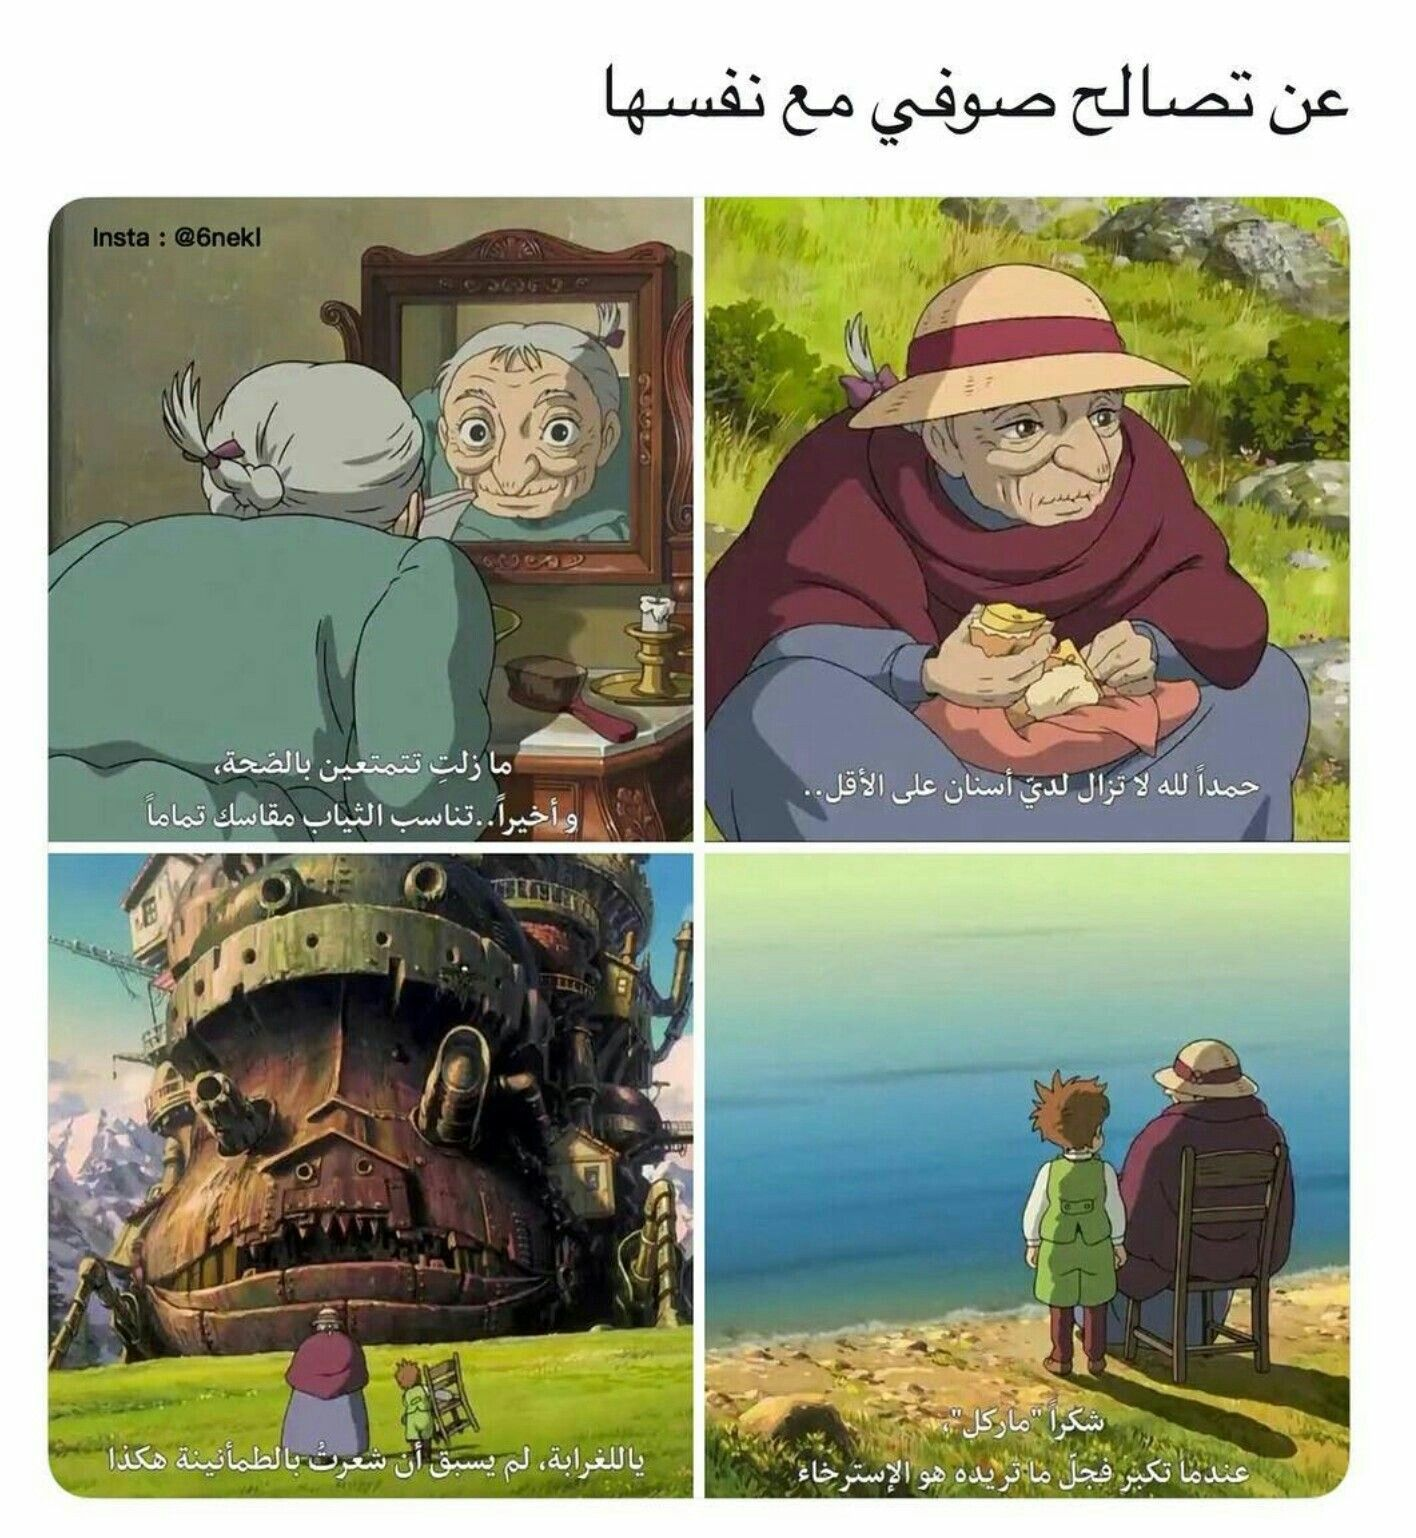 Pin By Majđ Abuhamđeh On عب ـارات ج ميلة Arabic Cartoon Quotes Arabic Quotes Funny Arabic Quotes